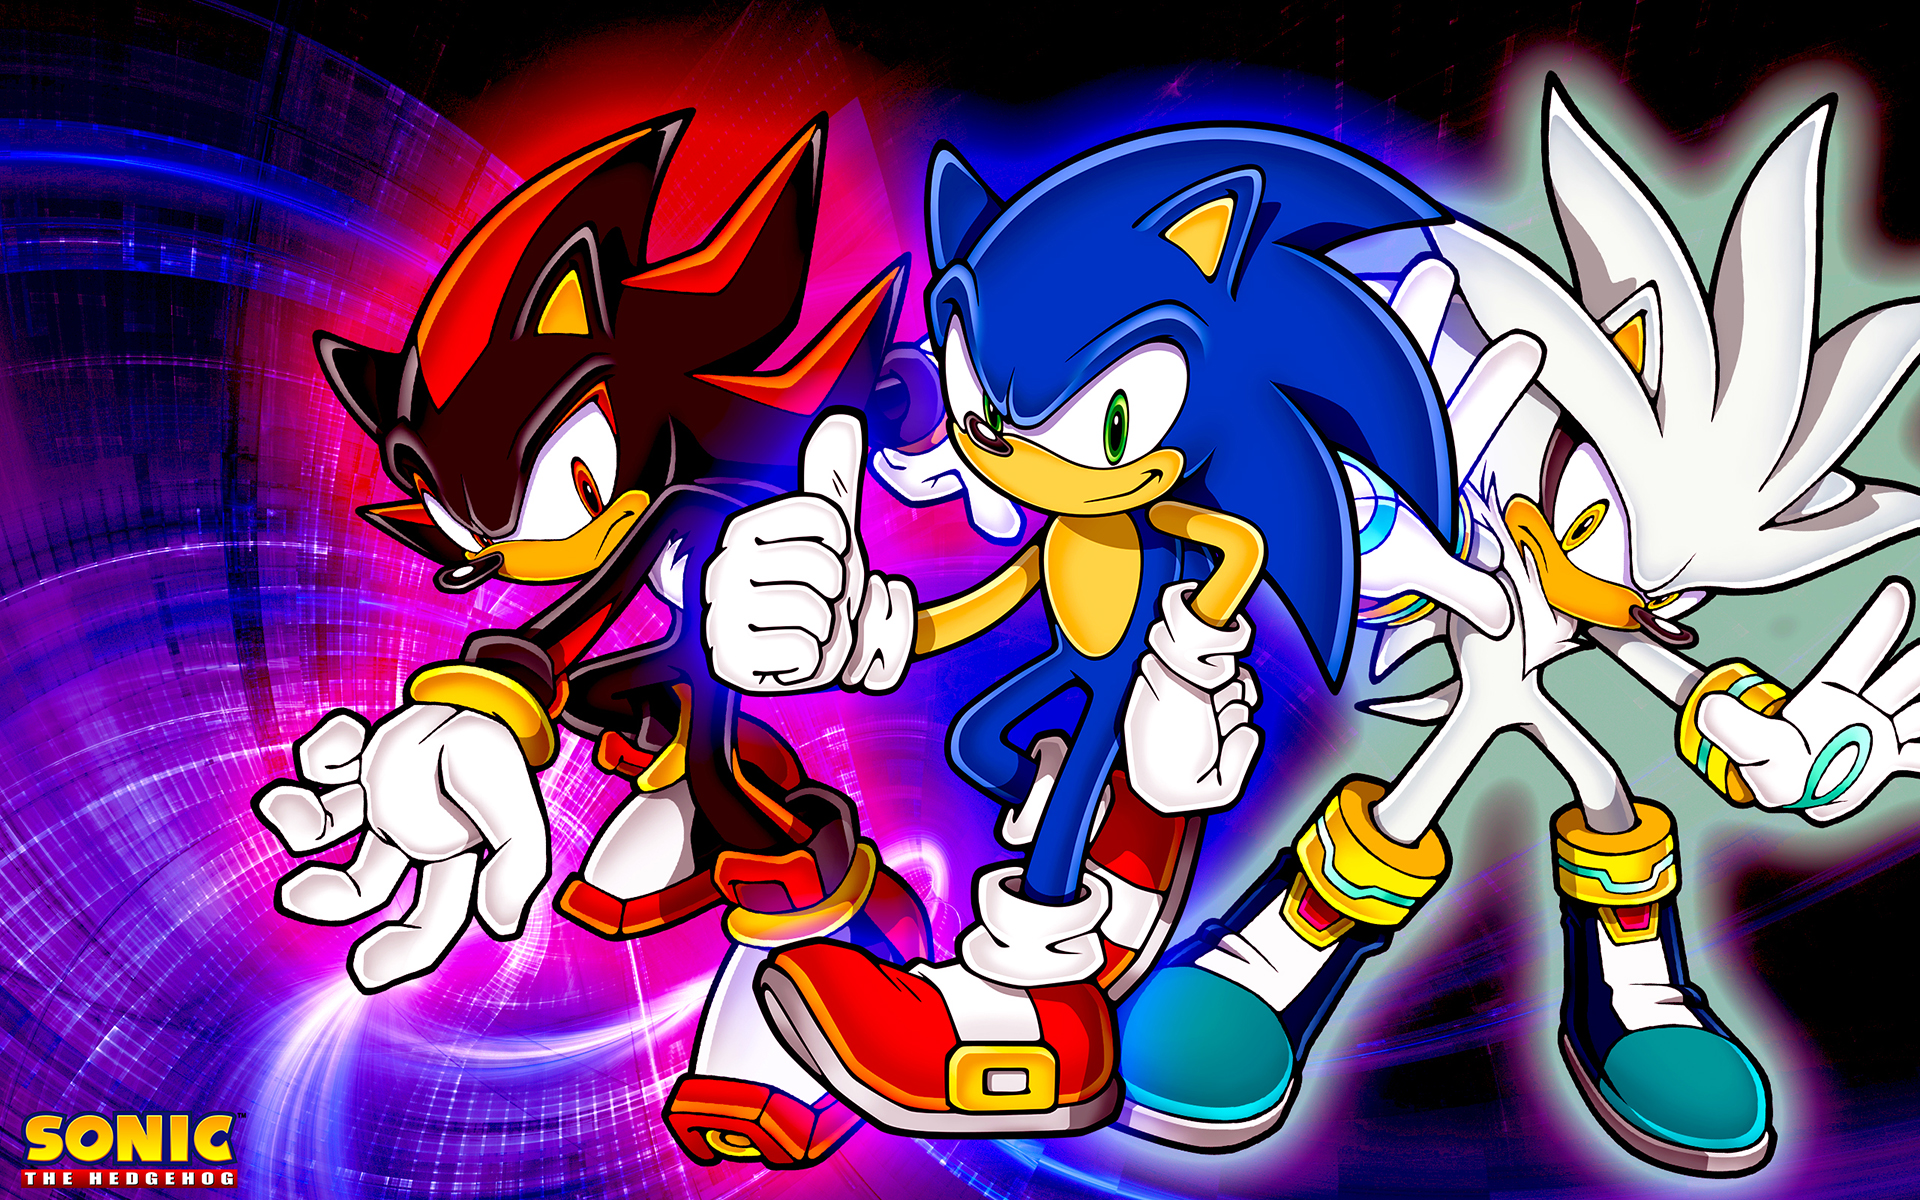 Sonic Shadow And Silver Wallpaper By Sonicthehedgehogbg On Deviantart